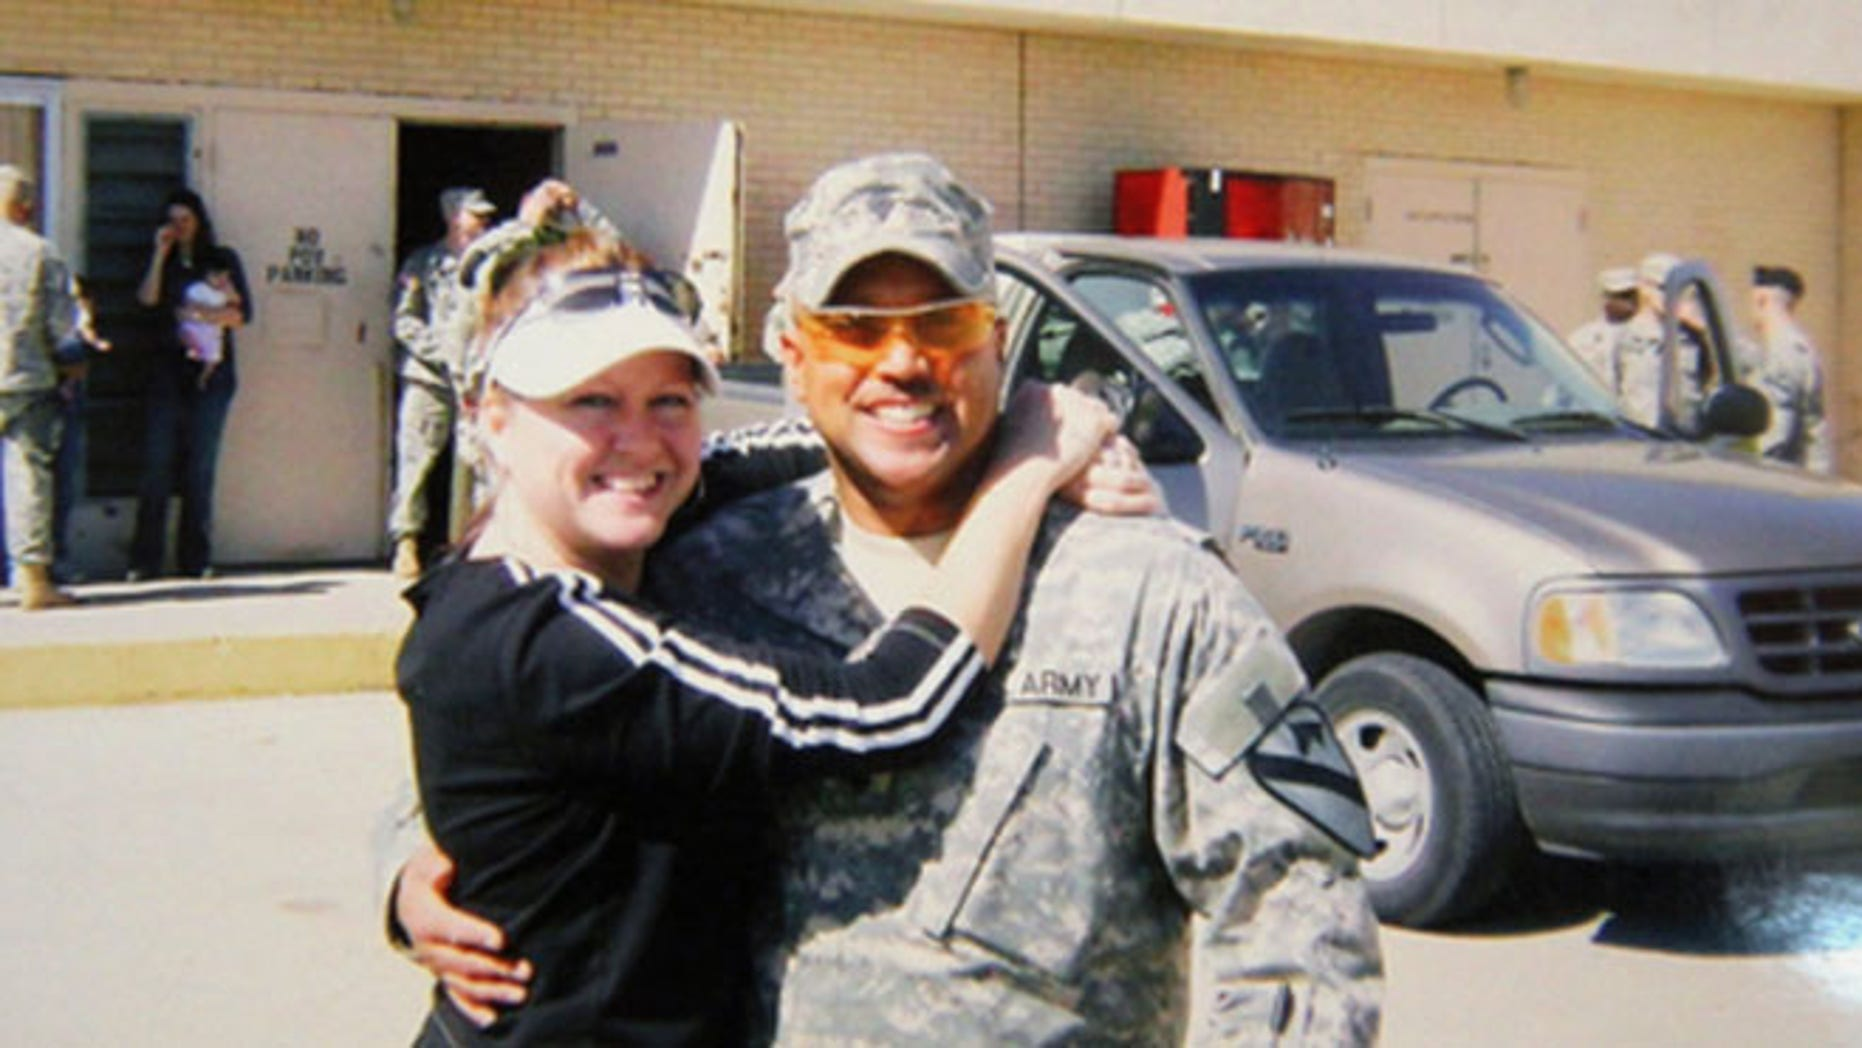 Sept. 22, 2014: Omar Gonzalez poses for a photo in his Army uniform with his former wife Samantha, prior to an overseas deployment.